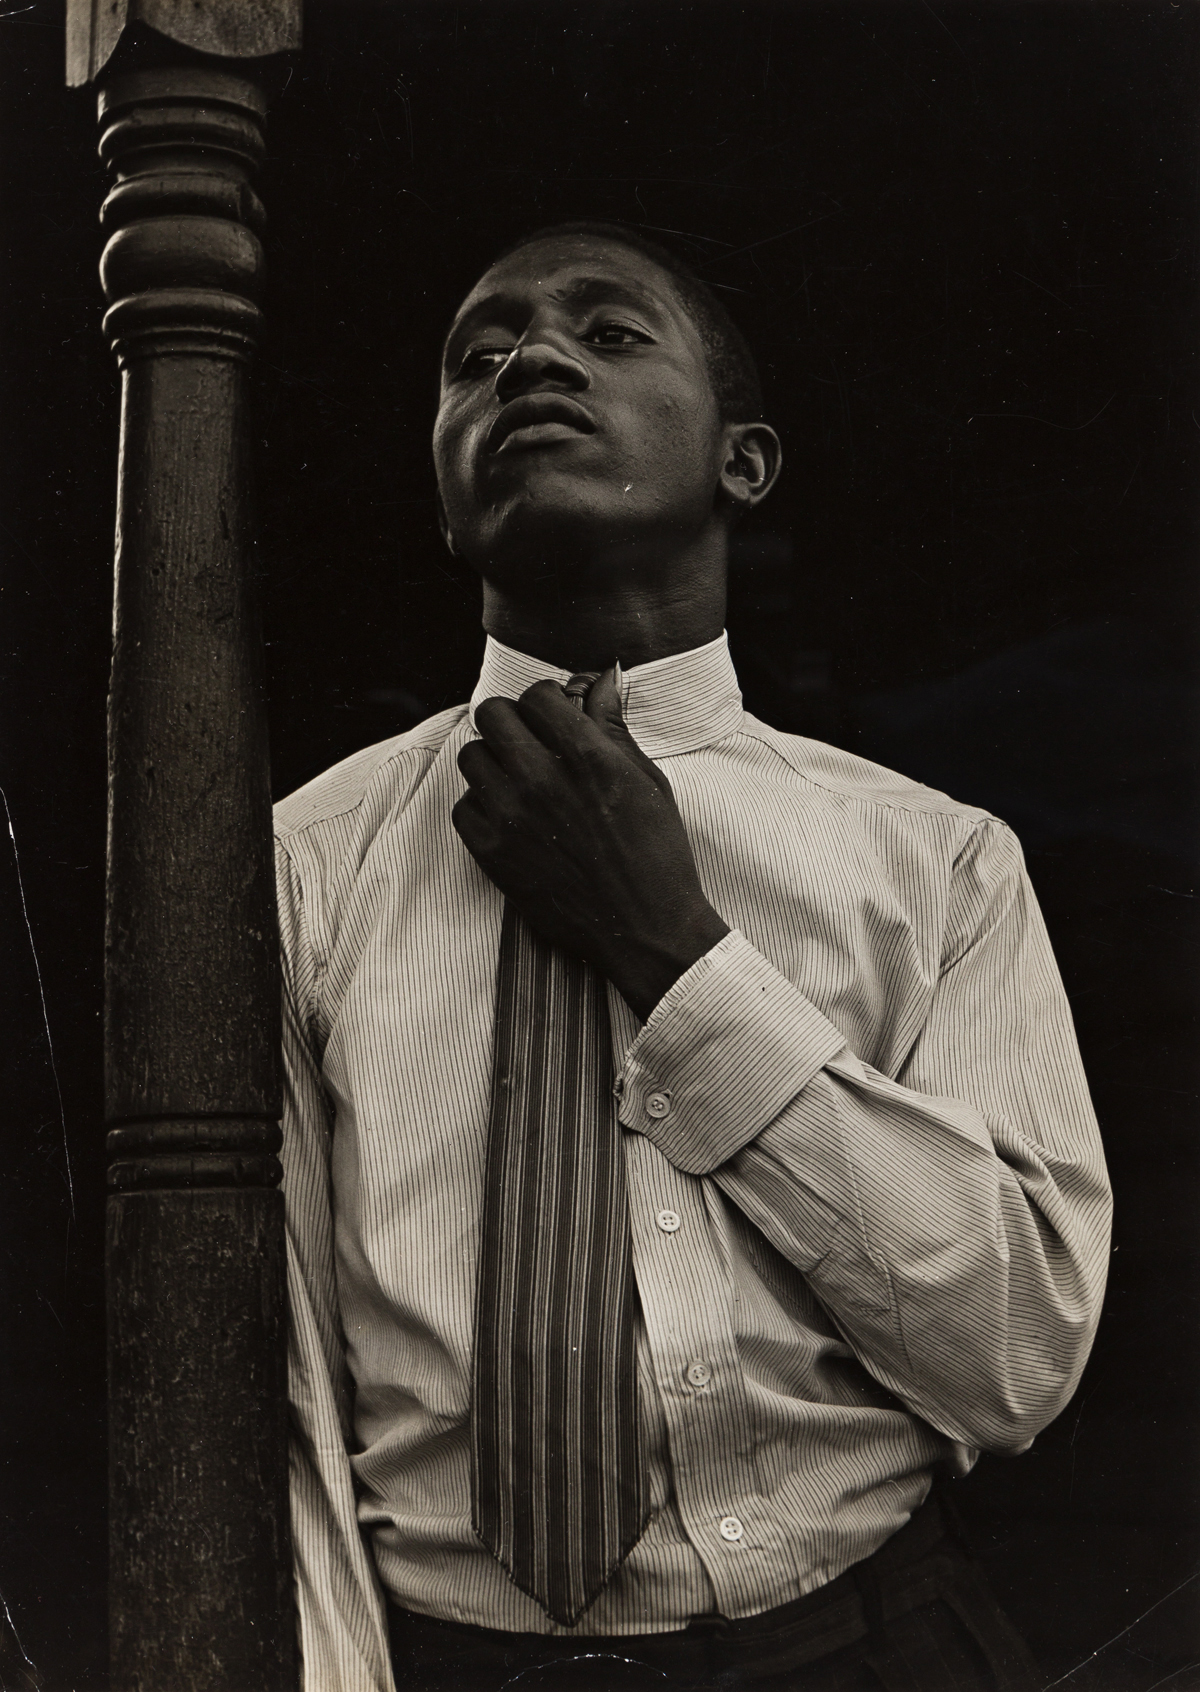 ARTHUR ROTHSTEIN (1915-1985) Portrait of a young African American man.